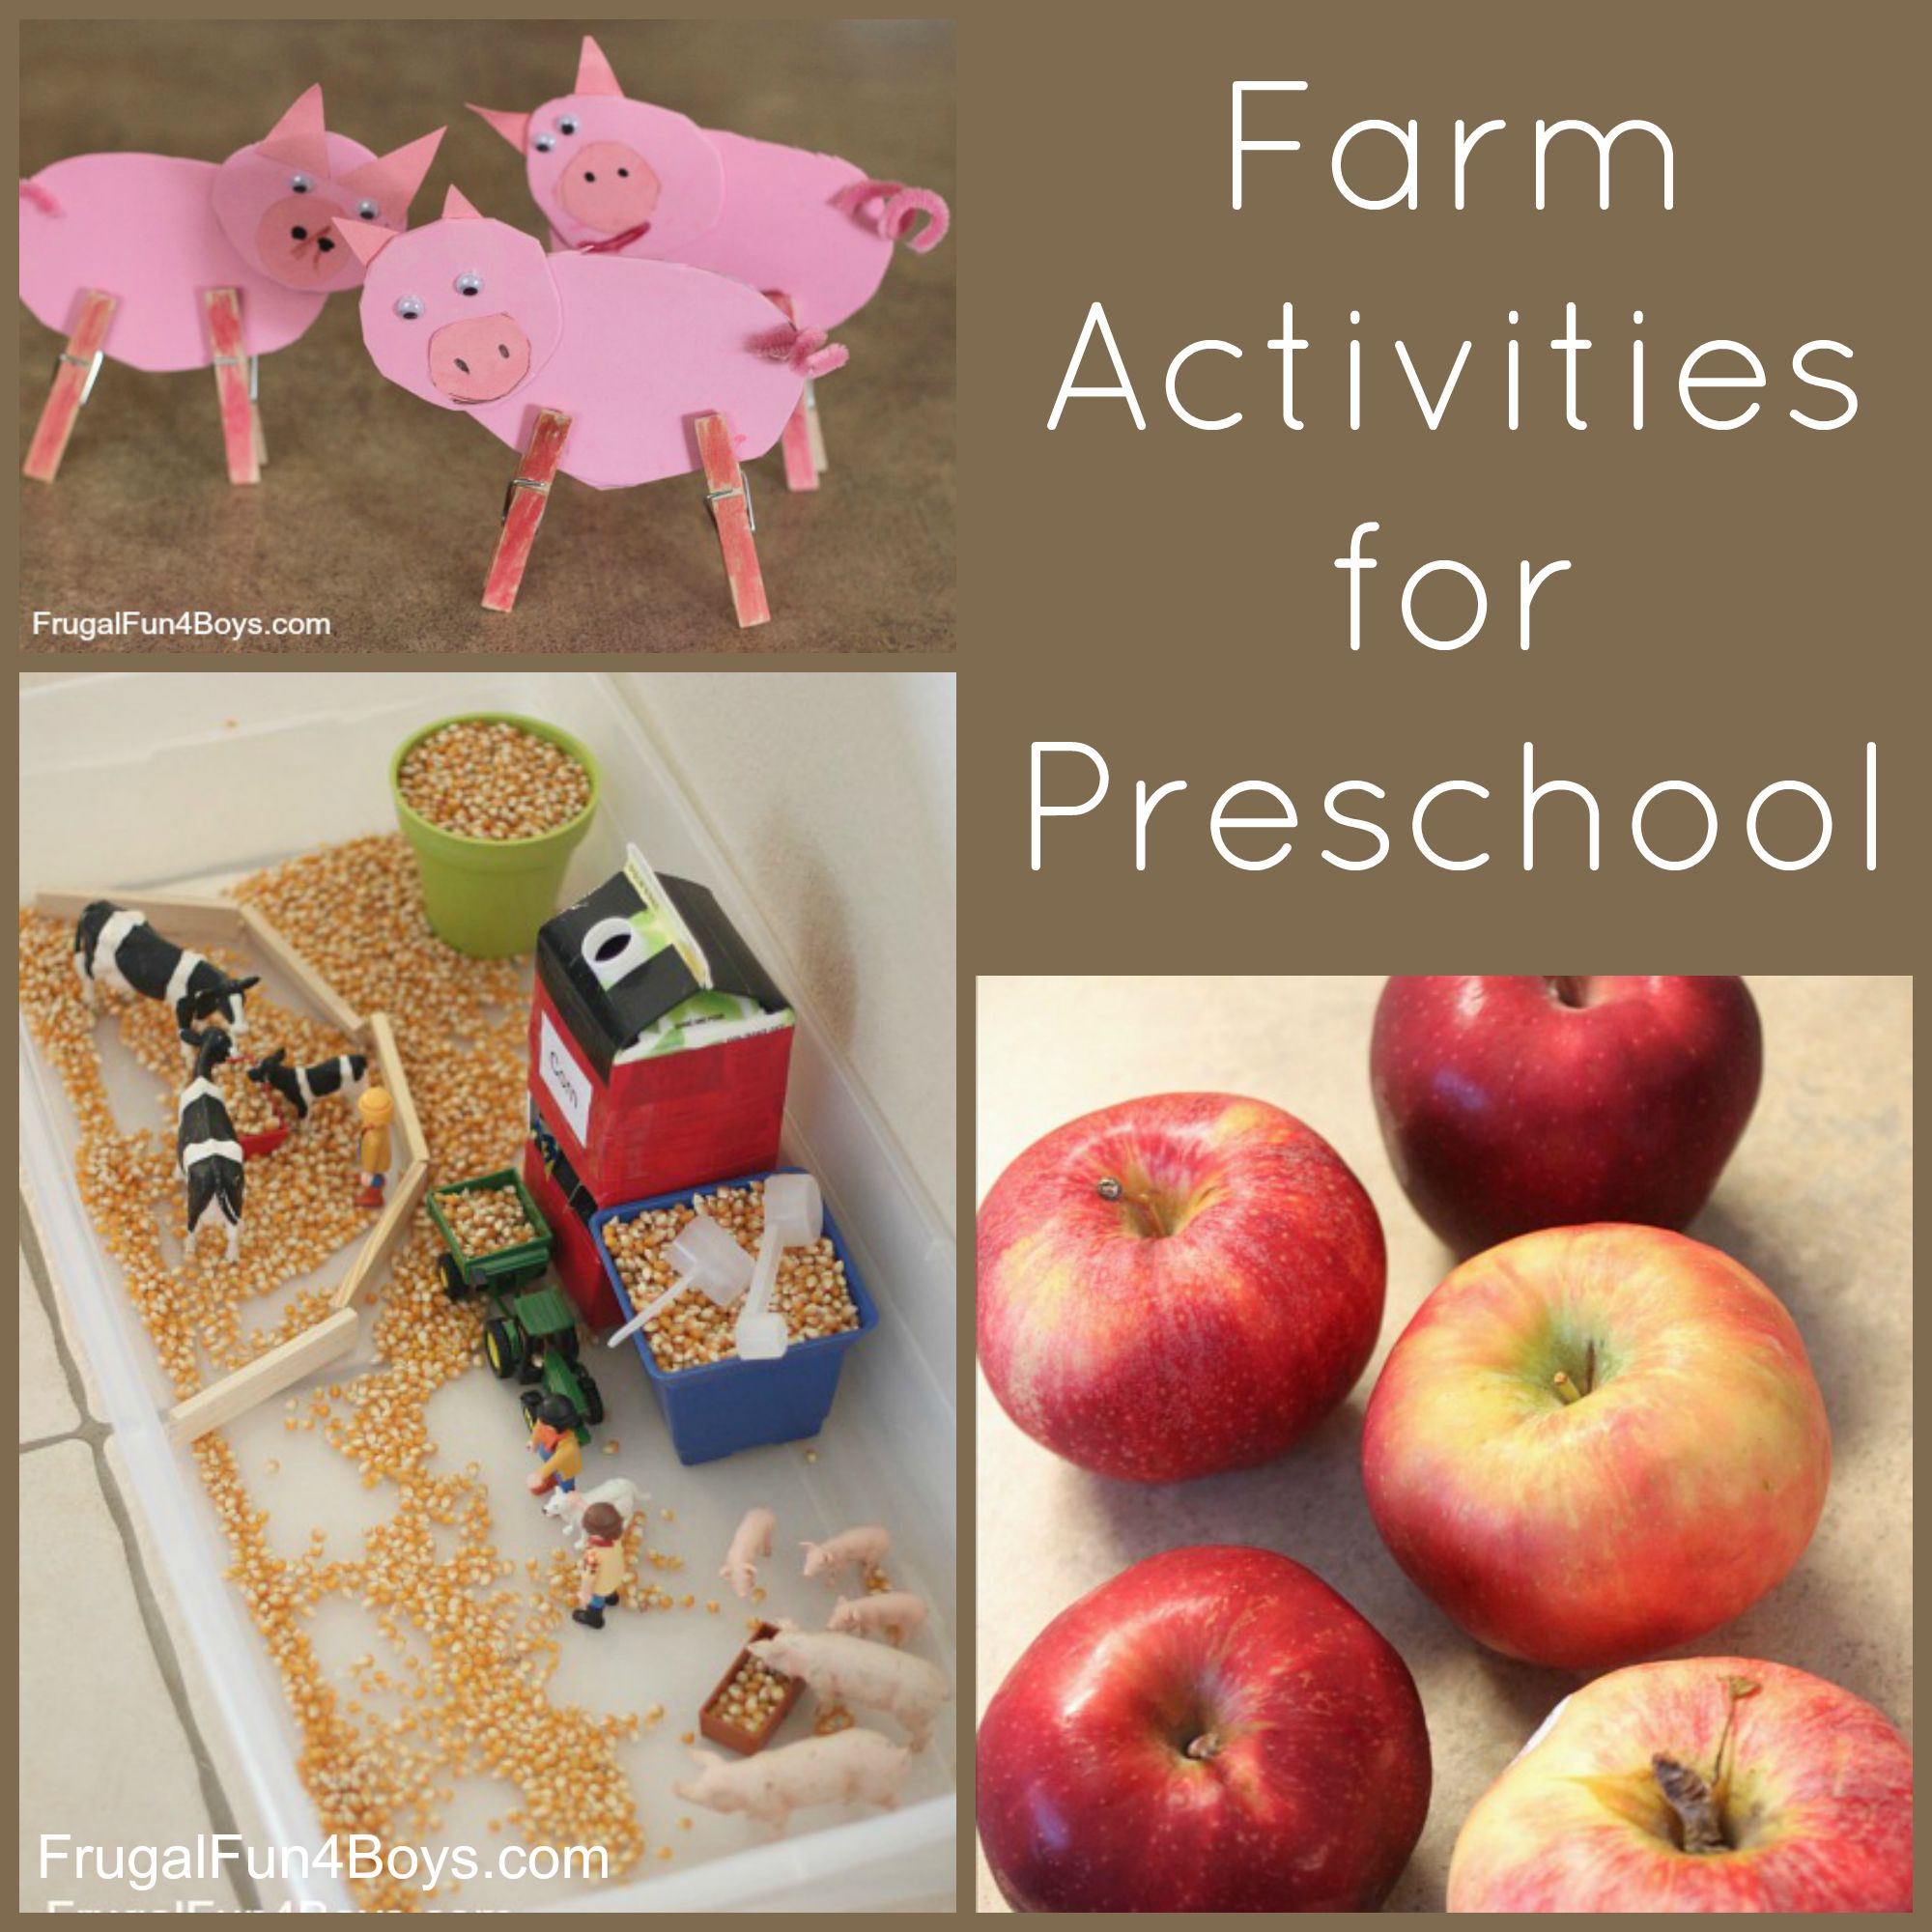 Farm Activities for Preschoolers - Crafts, Play, and Books